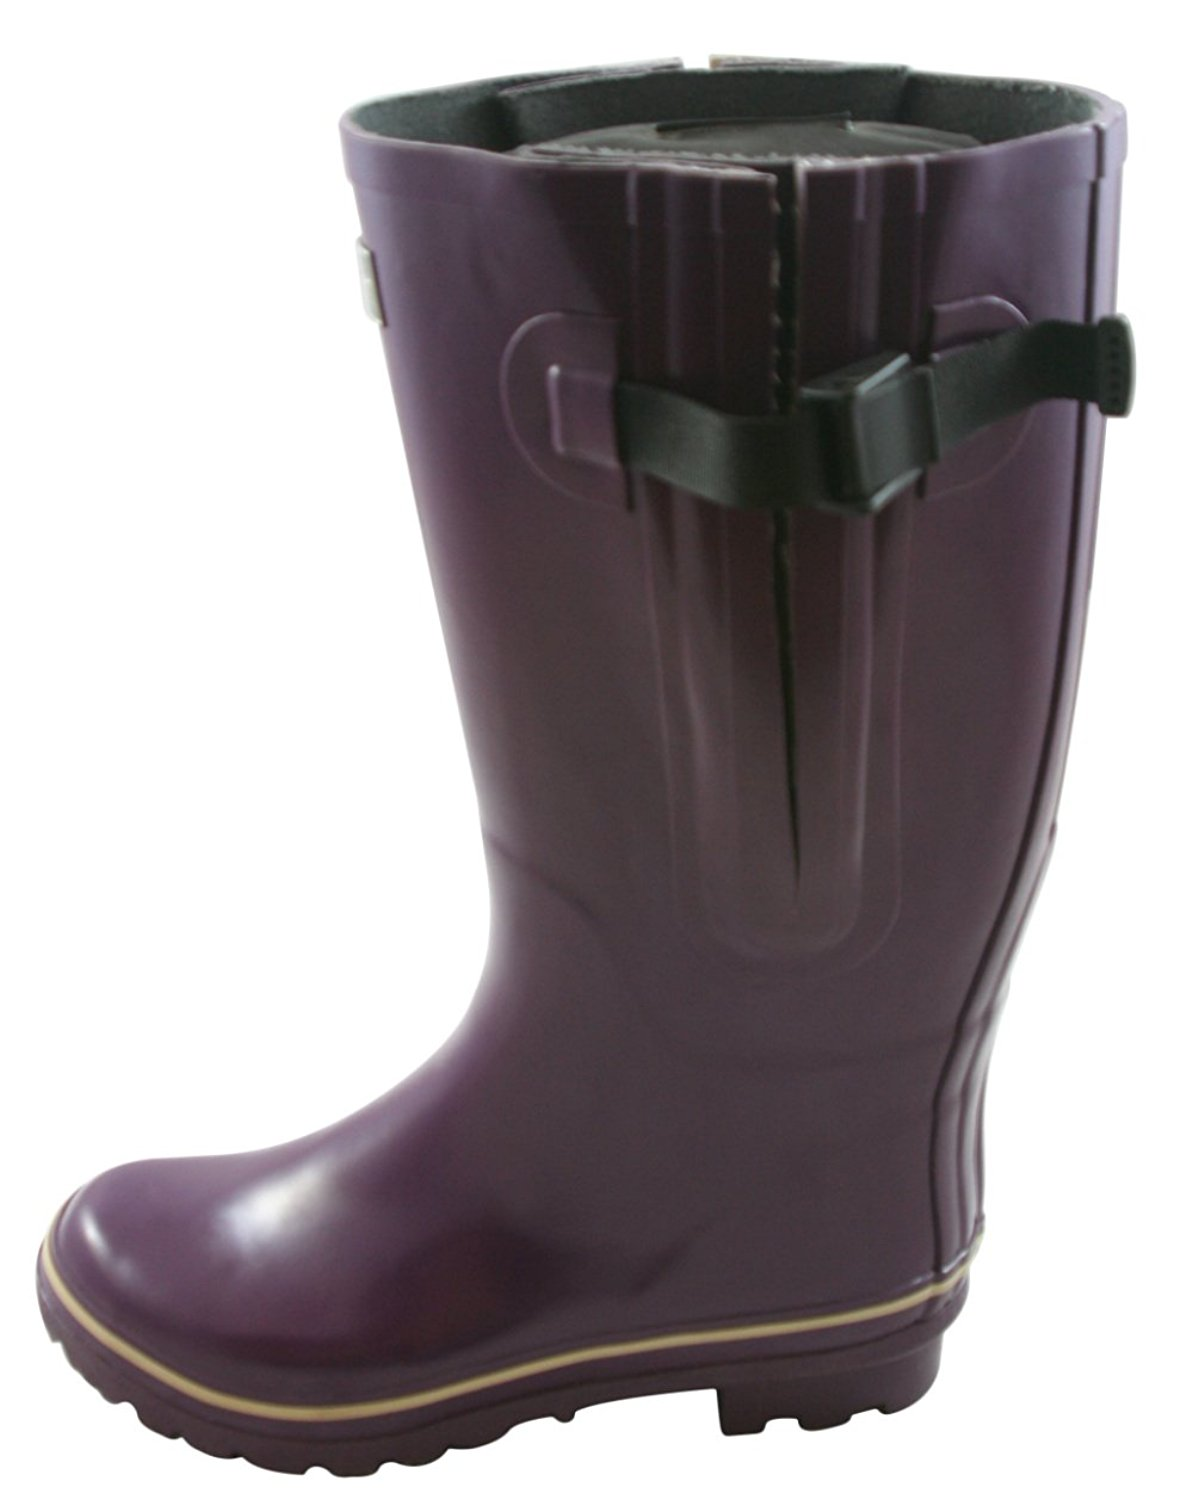 24f157c7185 Cheap Boots Wide Fit, find Boots Wide Fit deals on line at Alibaba.com